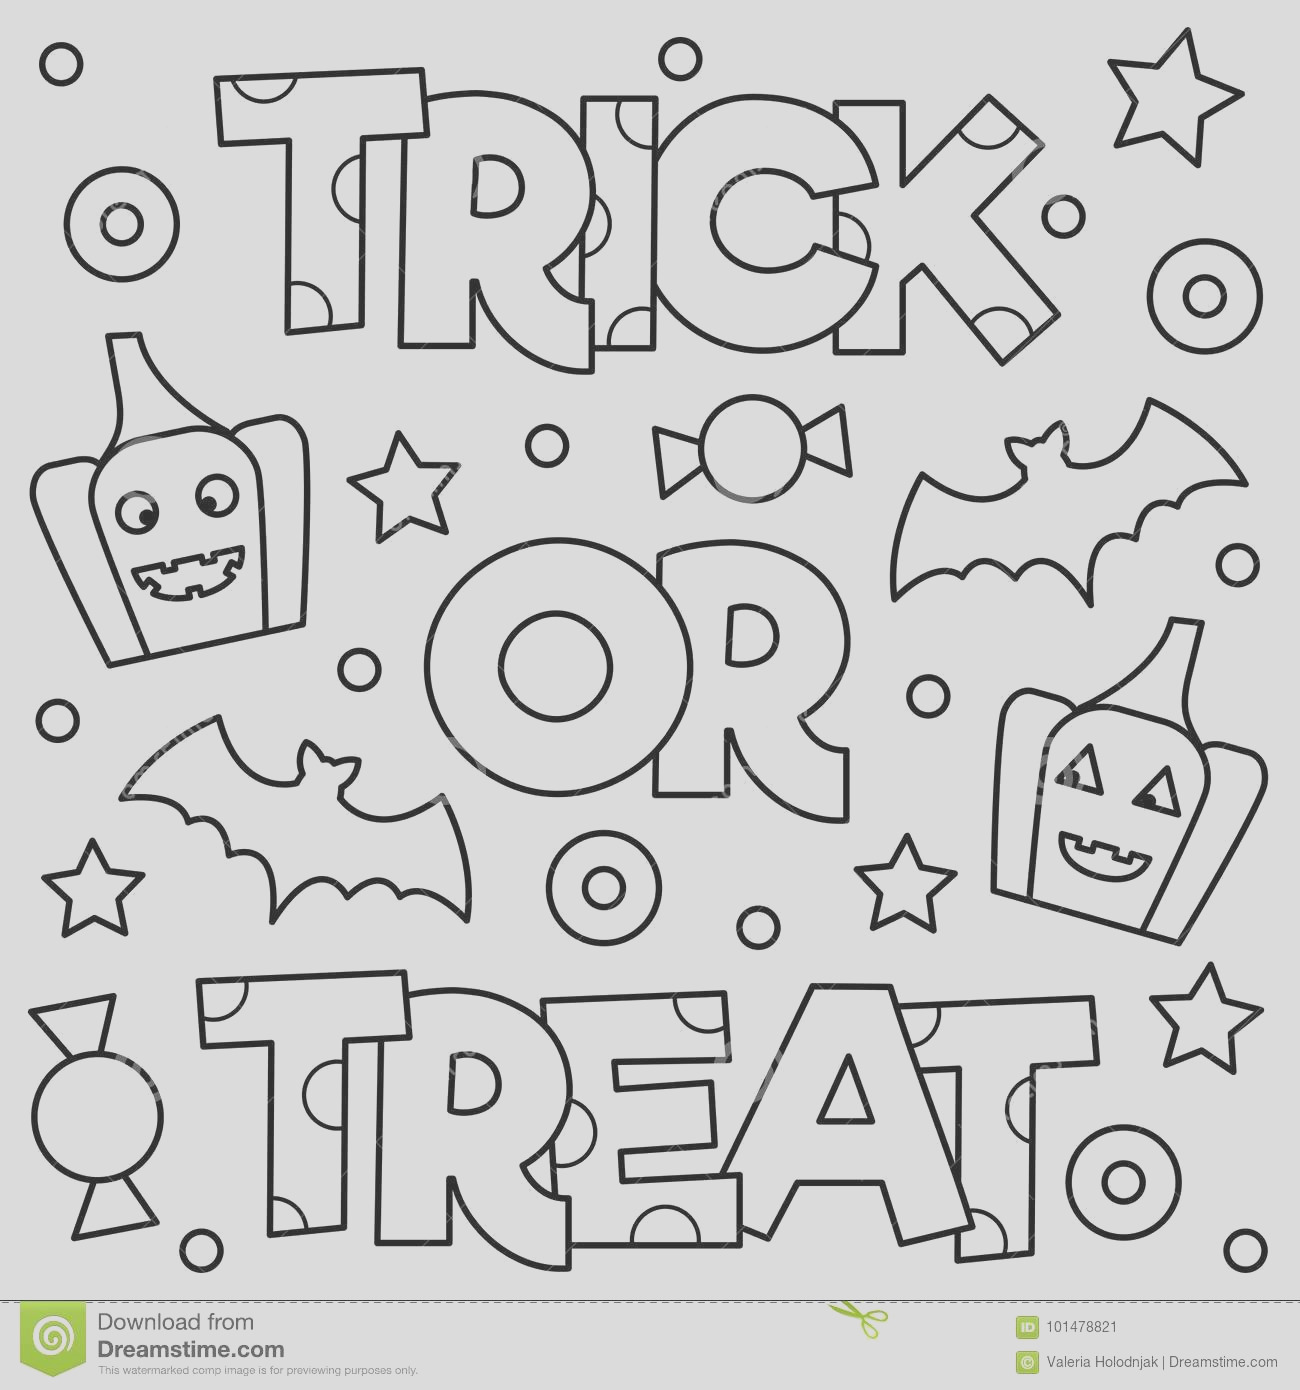 trick treat coloring page black white vector illustration trick treat coloring page vector illustration image